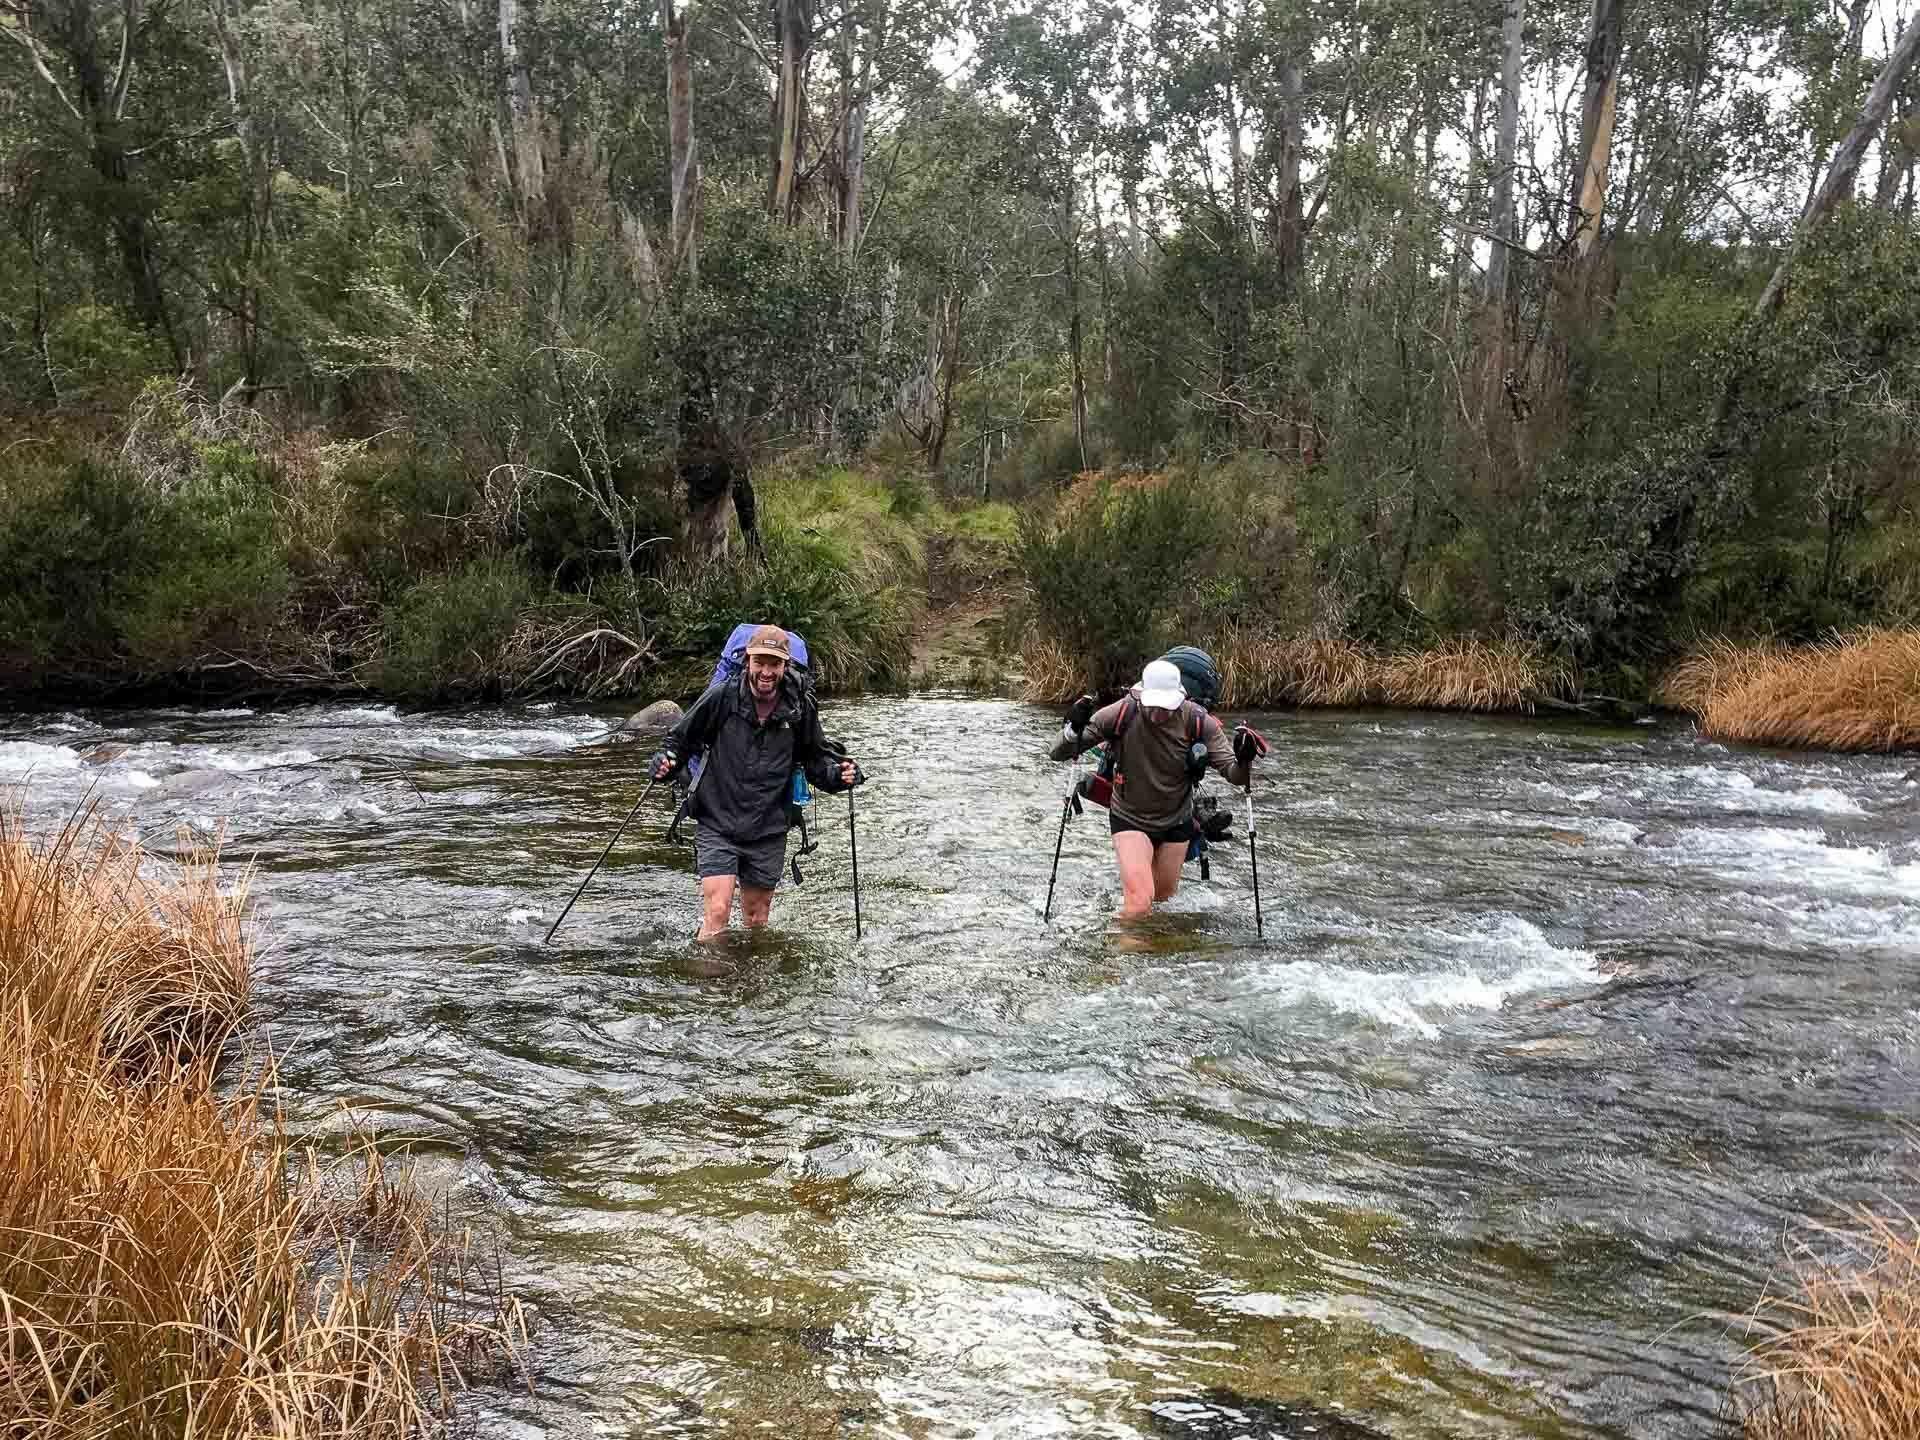 Hannels Spur – Climbing the Steep Western Face of Mt Kosciuszko, Richie Robinson, hannels spur, kosciuszko national park, nsw, river crossing, geehi river